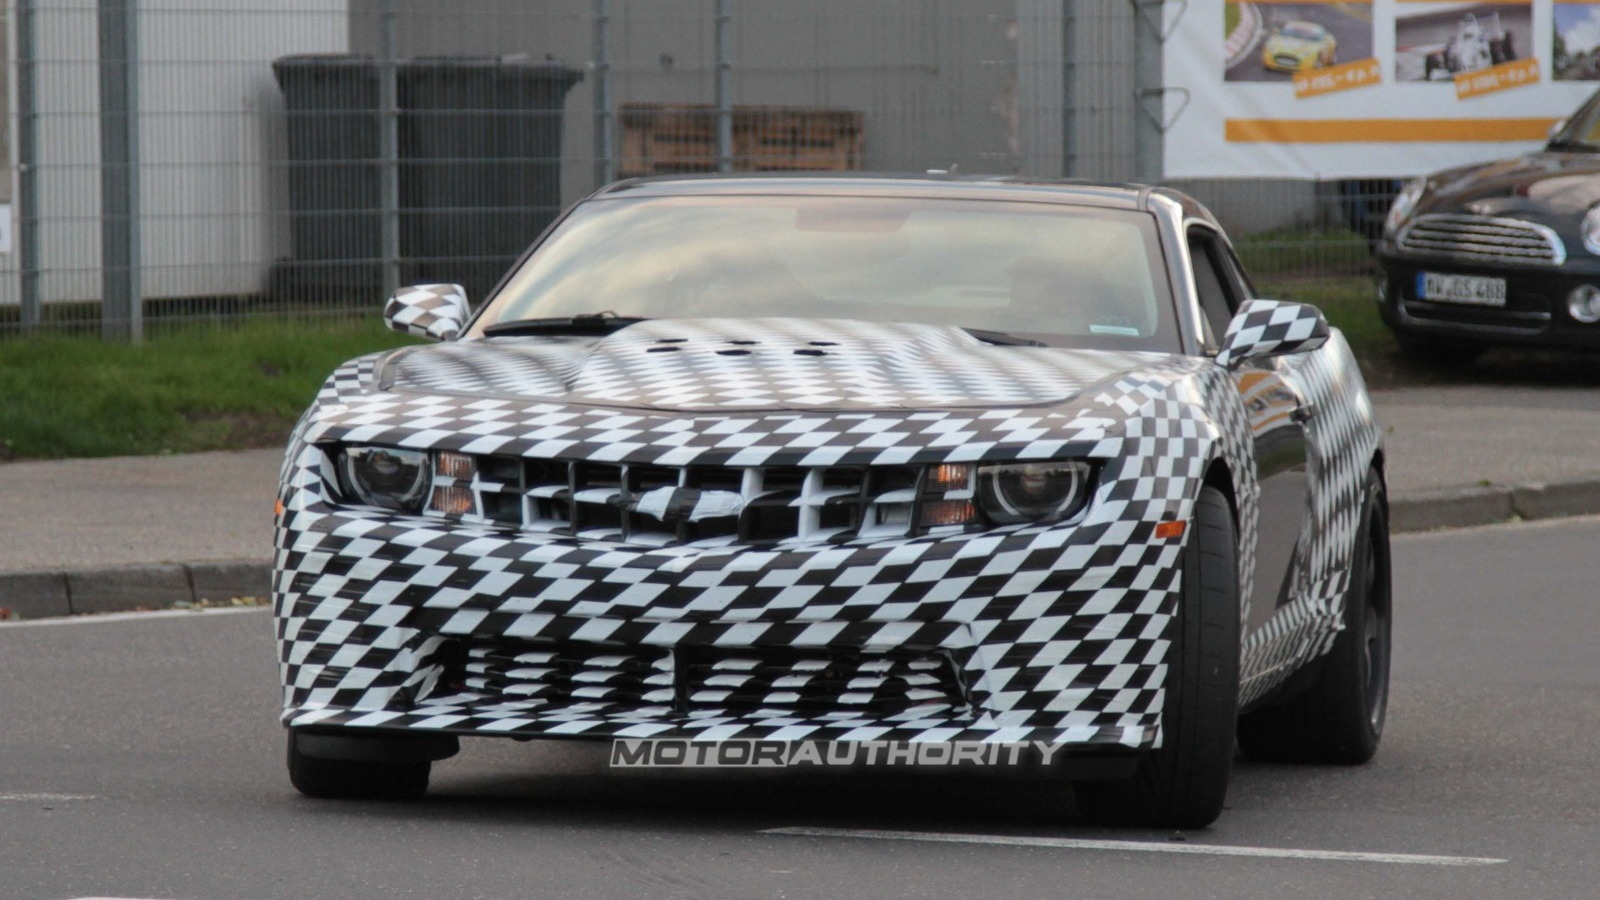 2012 Chevrolet Camaro Z28 spy shots